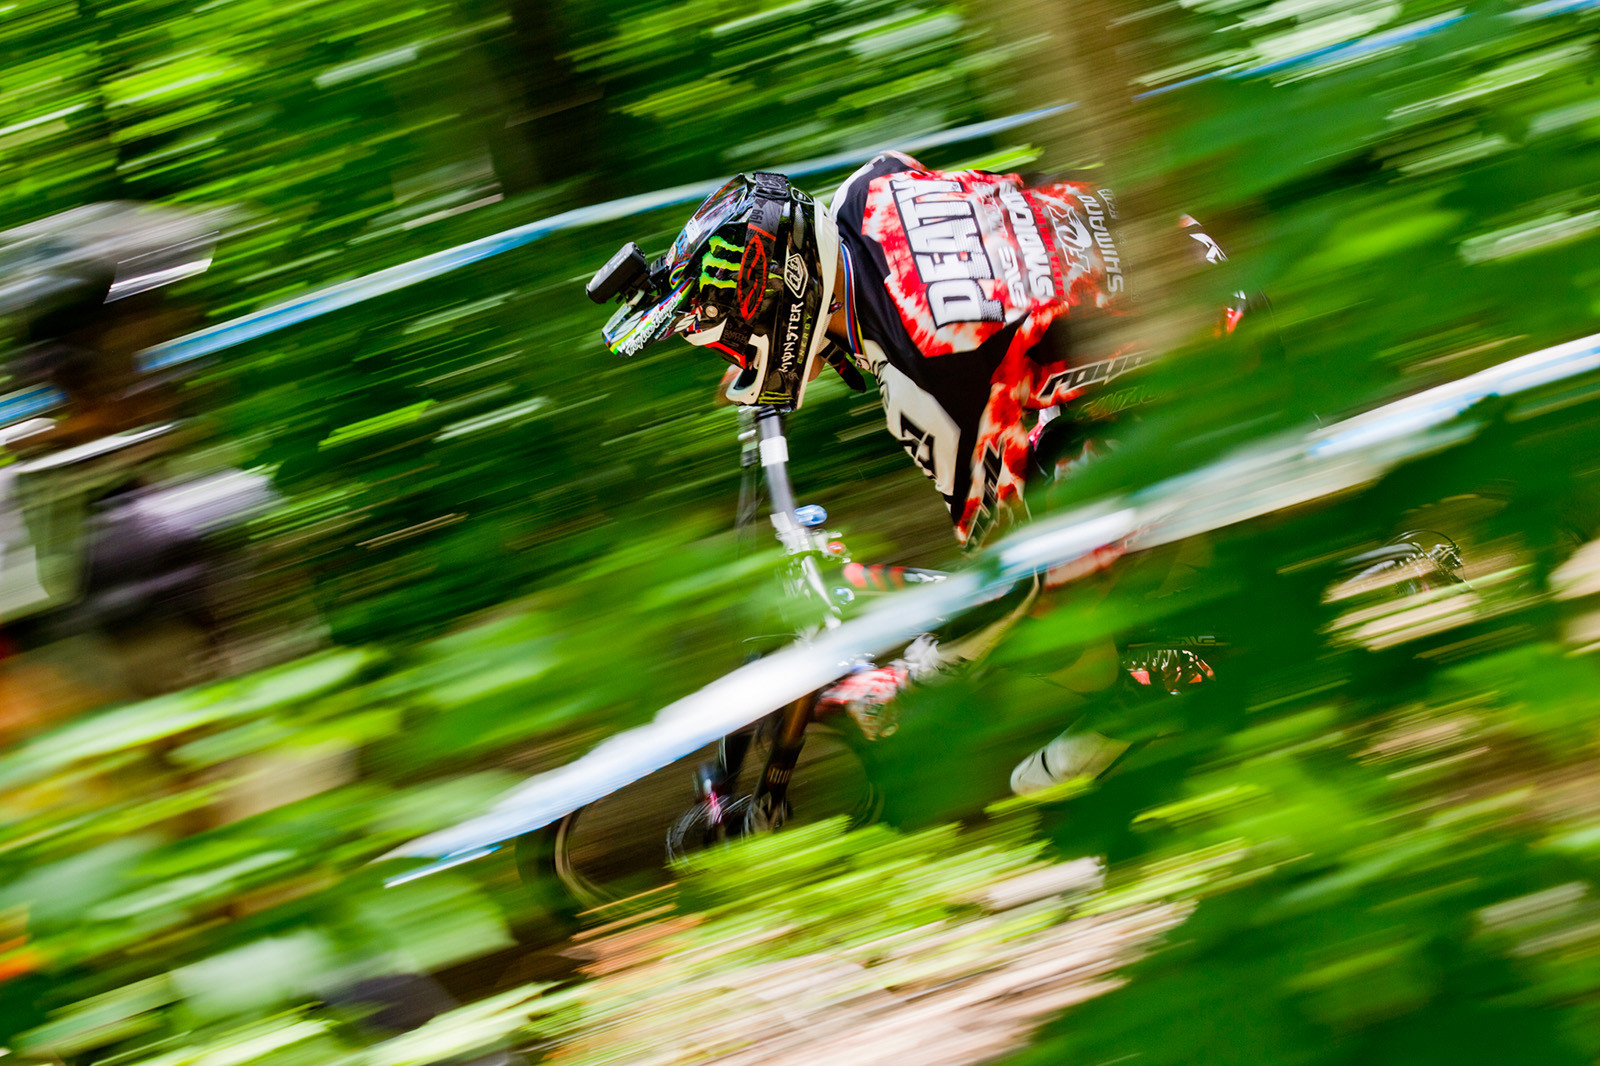 Steve Peat at Mont Sainte Anne - 2012 UCI World Cup, Mont Sainte Anne, Day 2 - Mountain Biking Pictures - Vital MTB